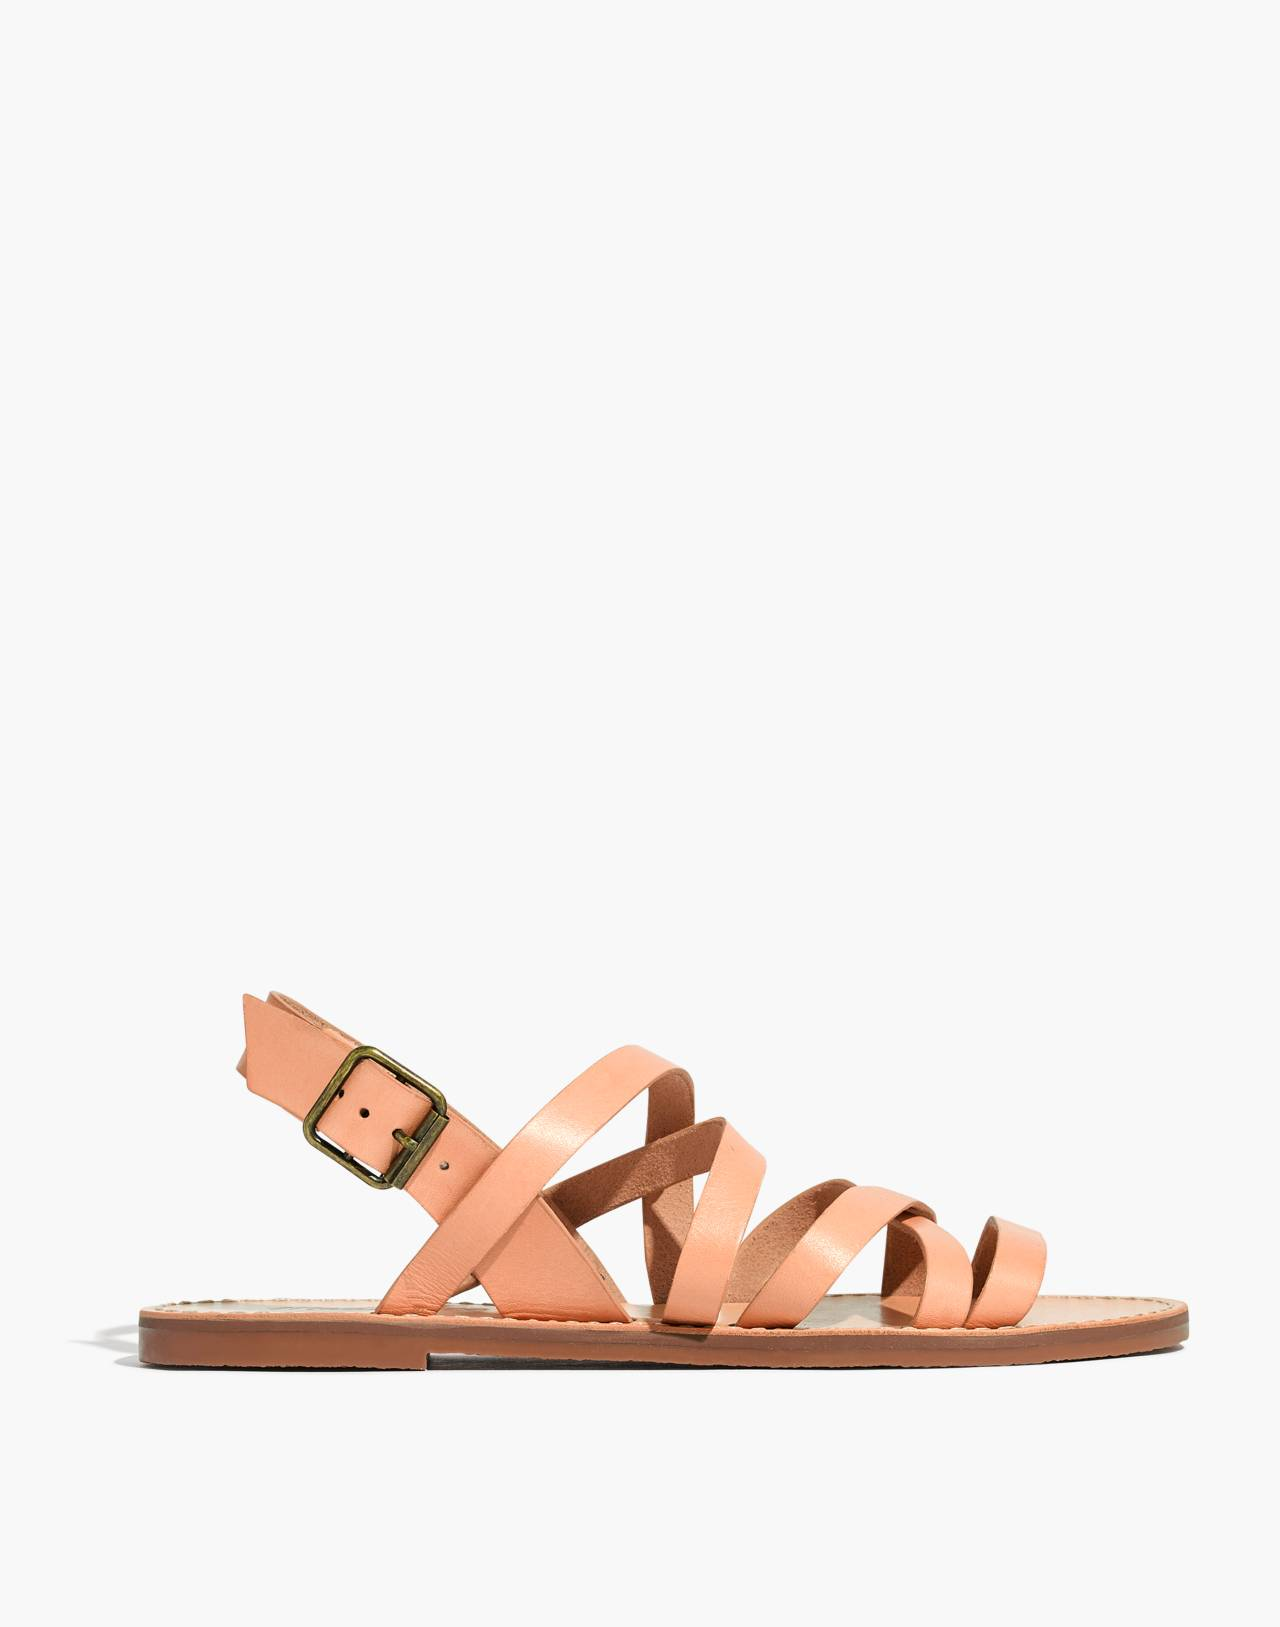 The Boardwalk Multistrap Sandal in natural buff image 3